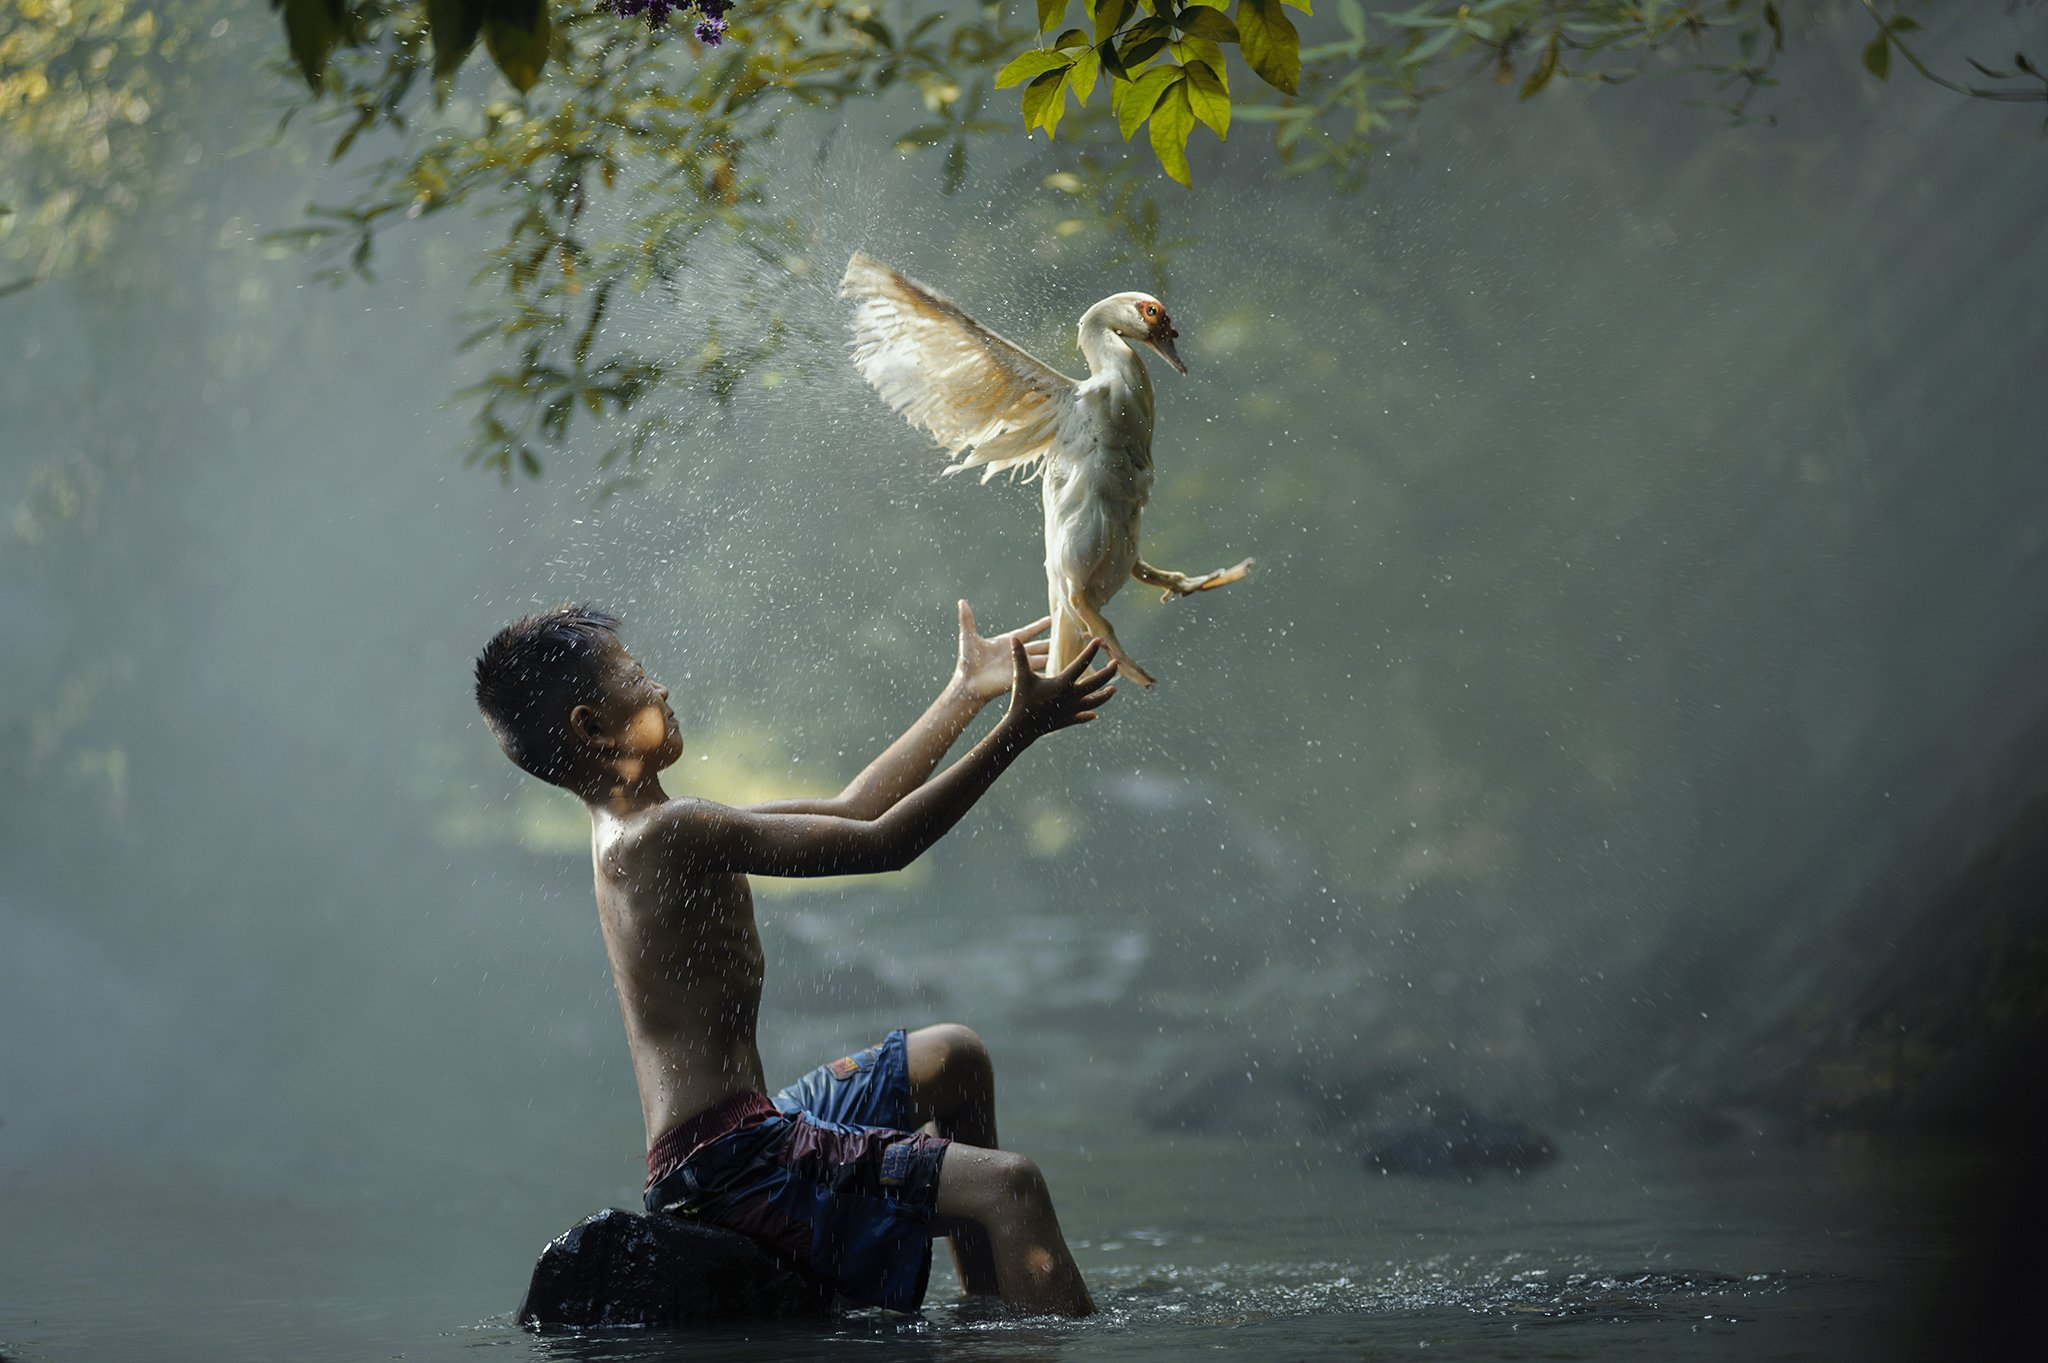 Action, Animals, Asia, Asian, Boy, Child, Children, Duck, Fun, Green, Life, Lucky, River, Water, Waterfall, Wildlife, Saravut Whanset